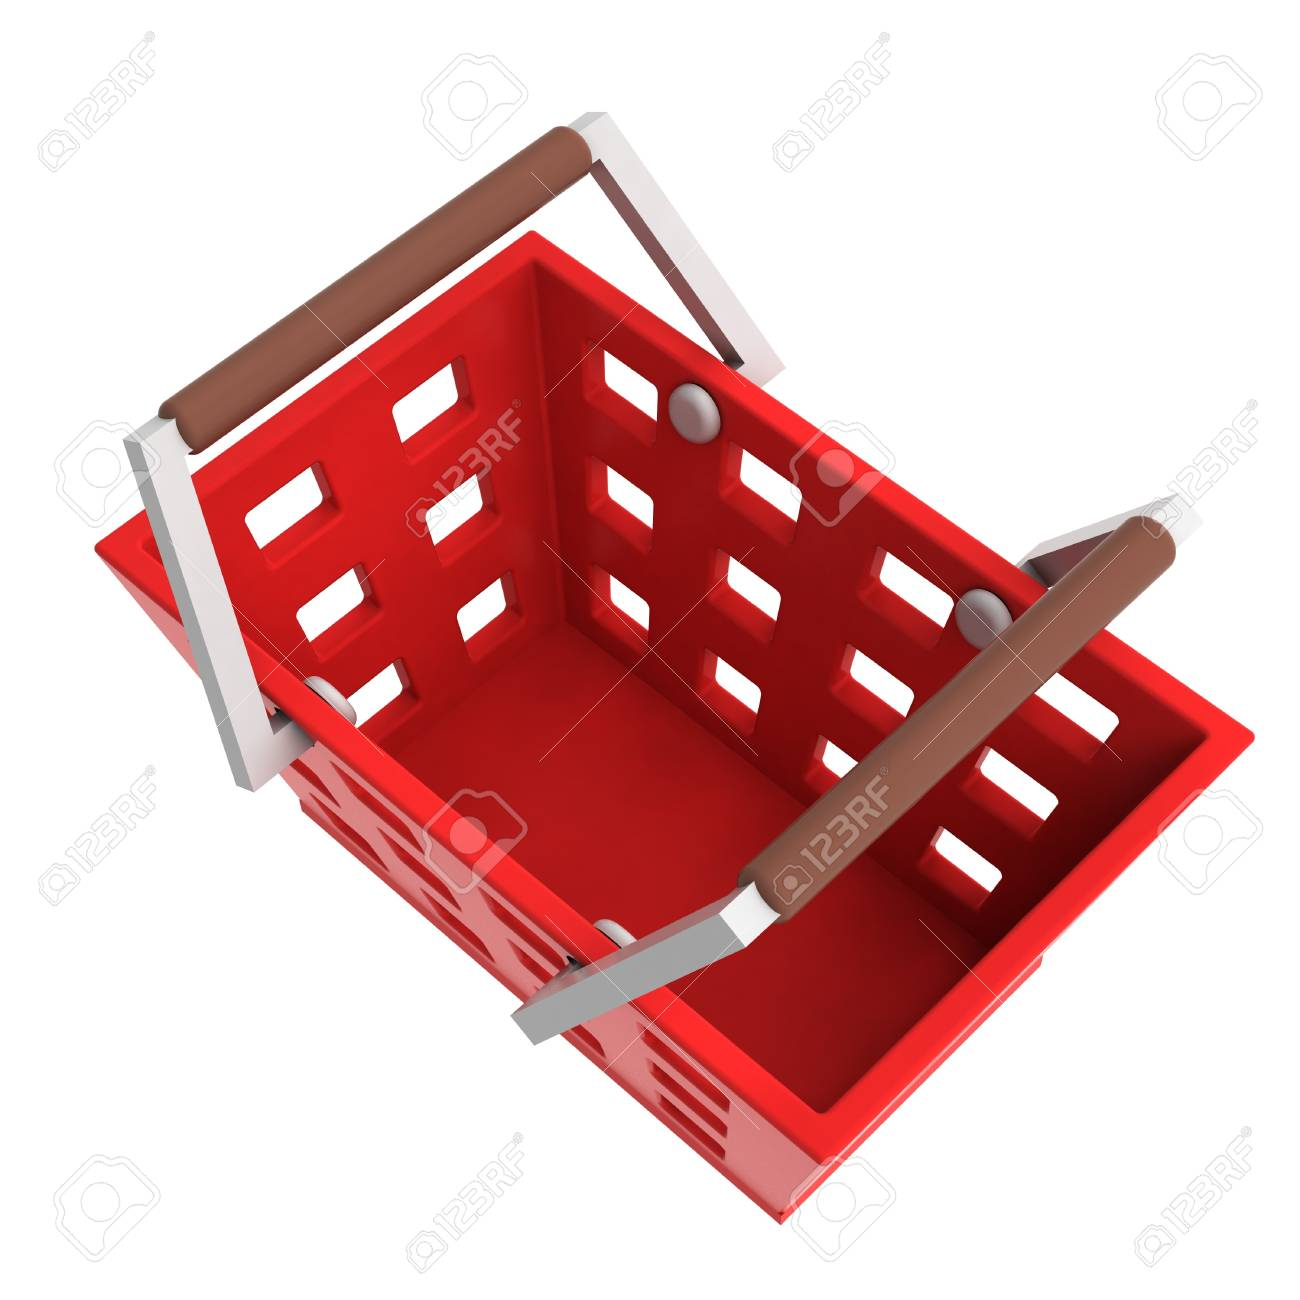 red shopping basket upper view isolated illustration Stock Illustration - 21228454